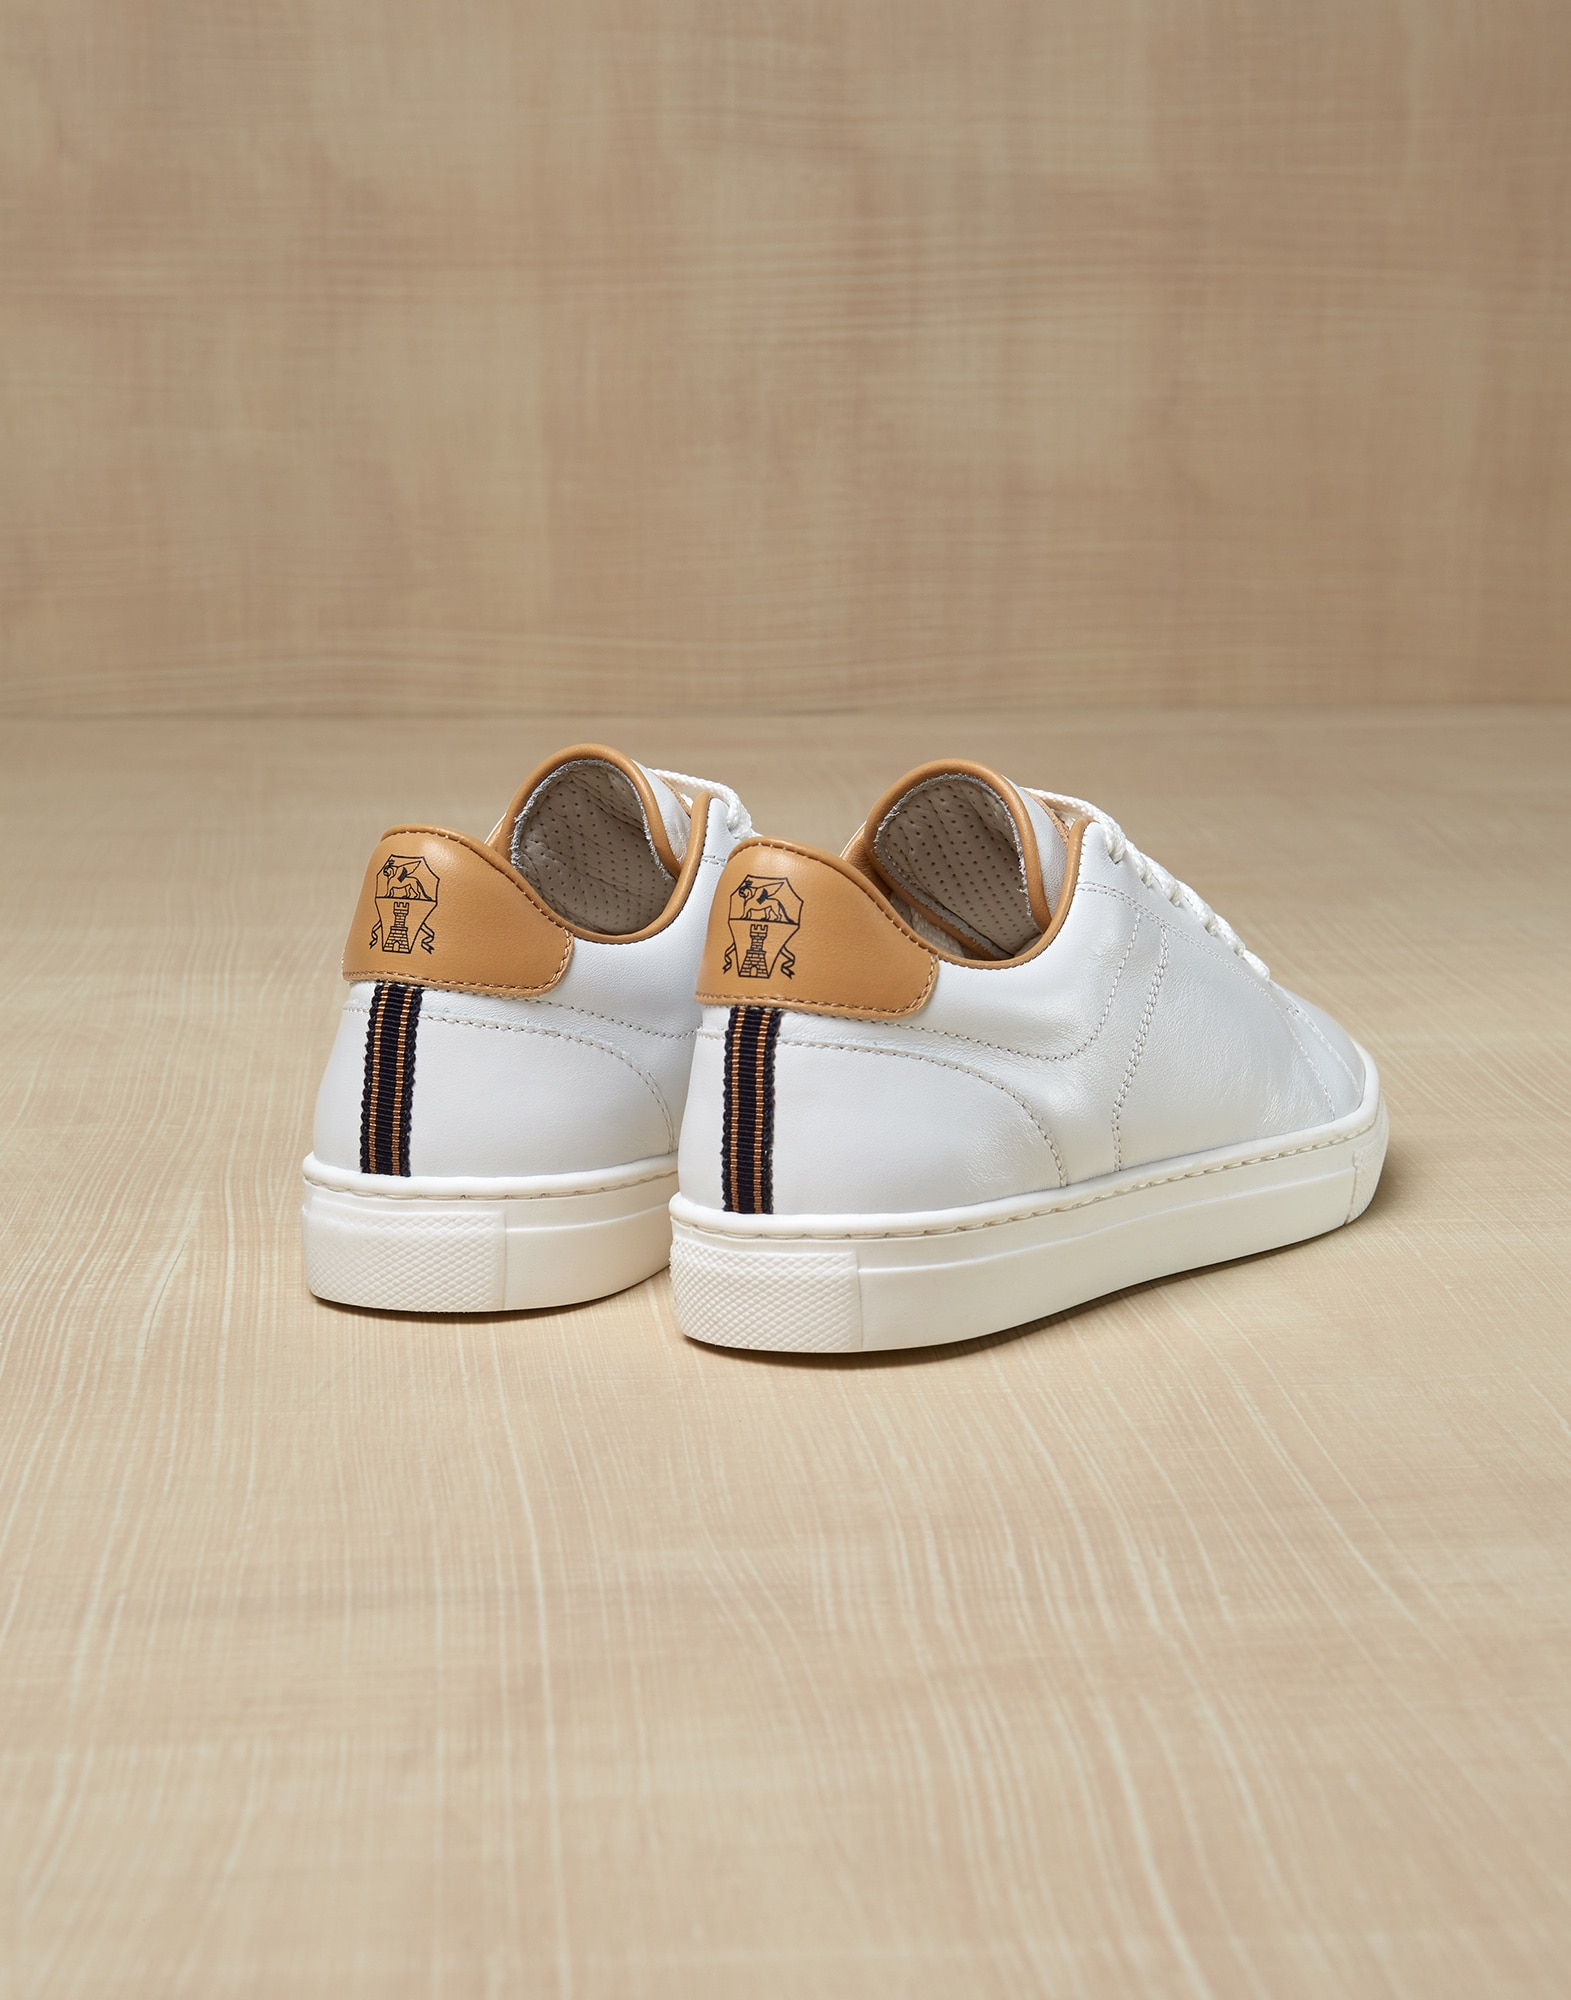 Sneakers White Boy 2 - Brunello Cucinelli